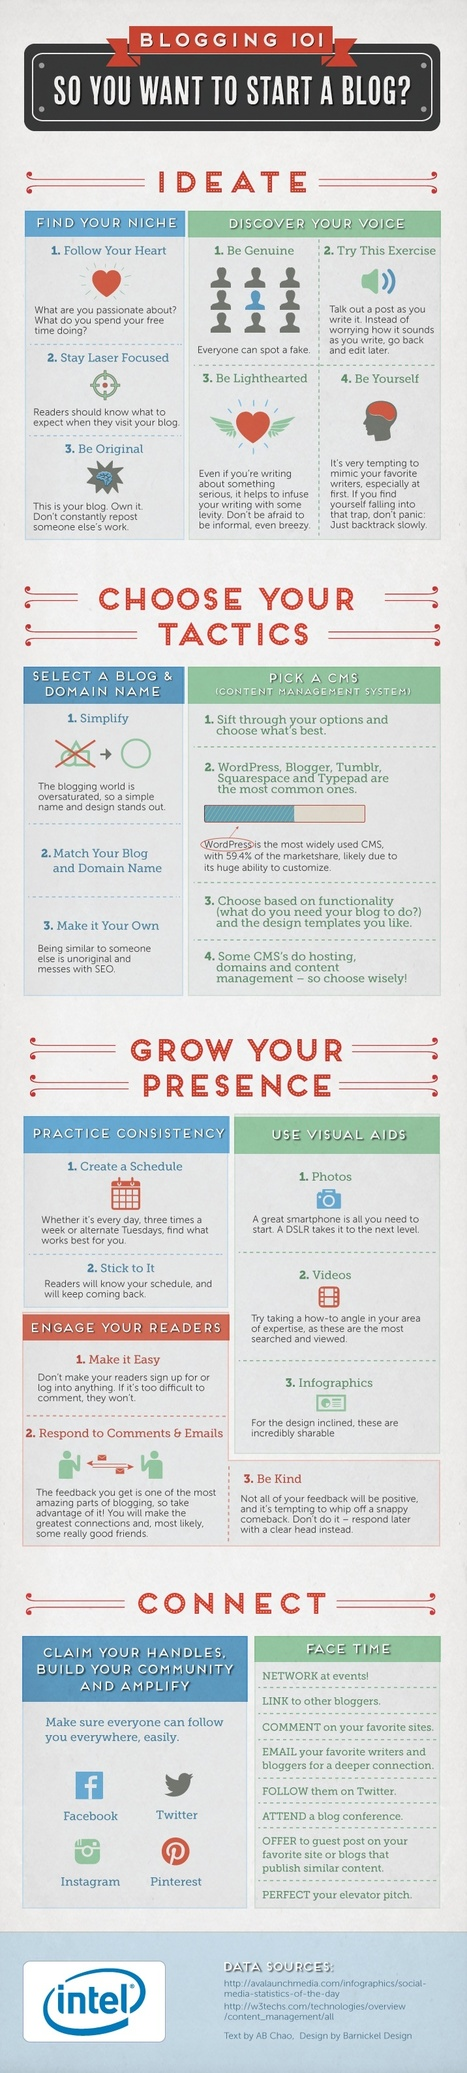 So You Want To Start A Blog? (Infographic) | Content Creation, Curation, Management | Scoop.it